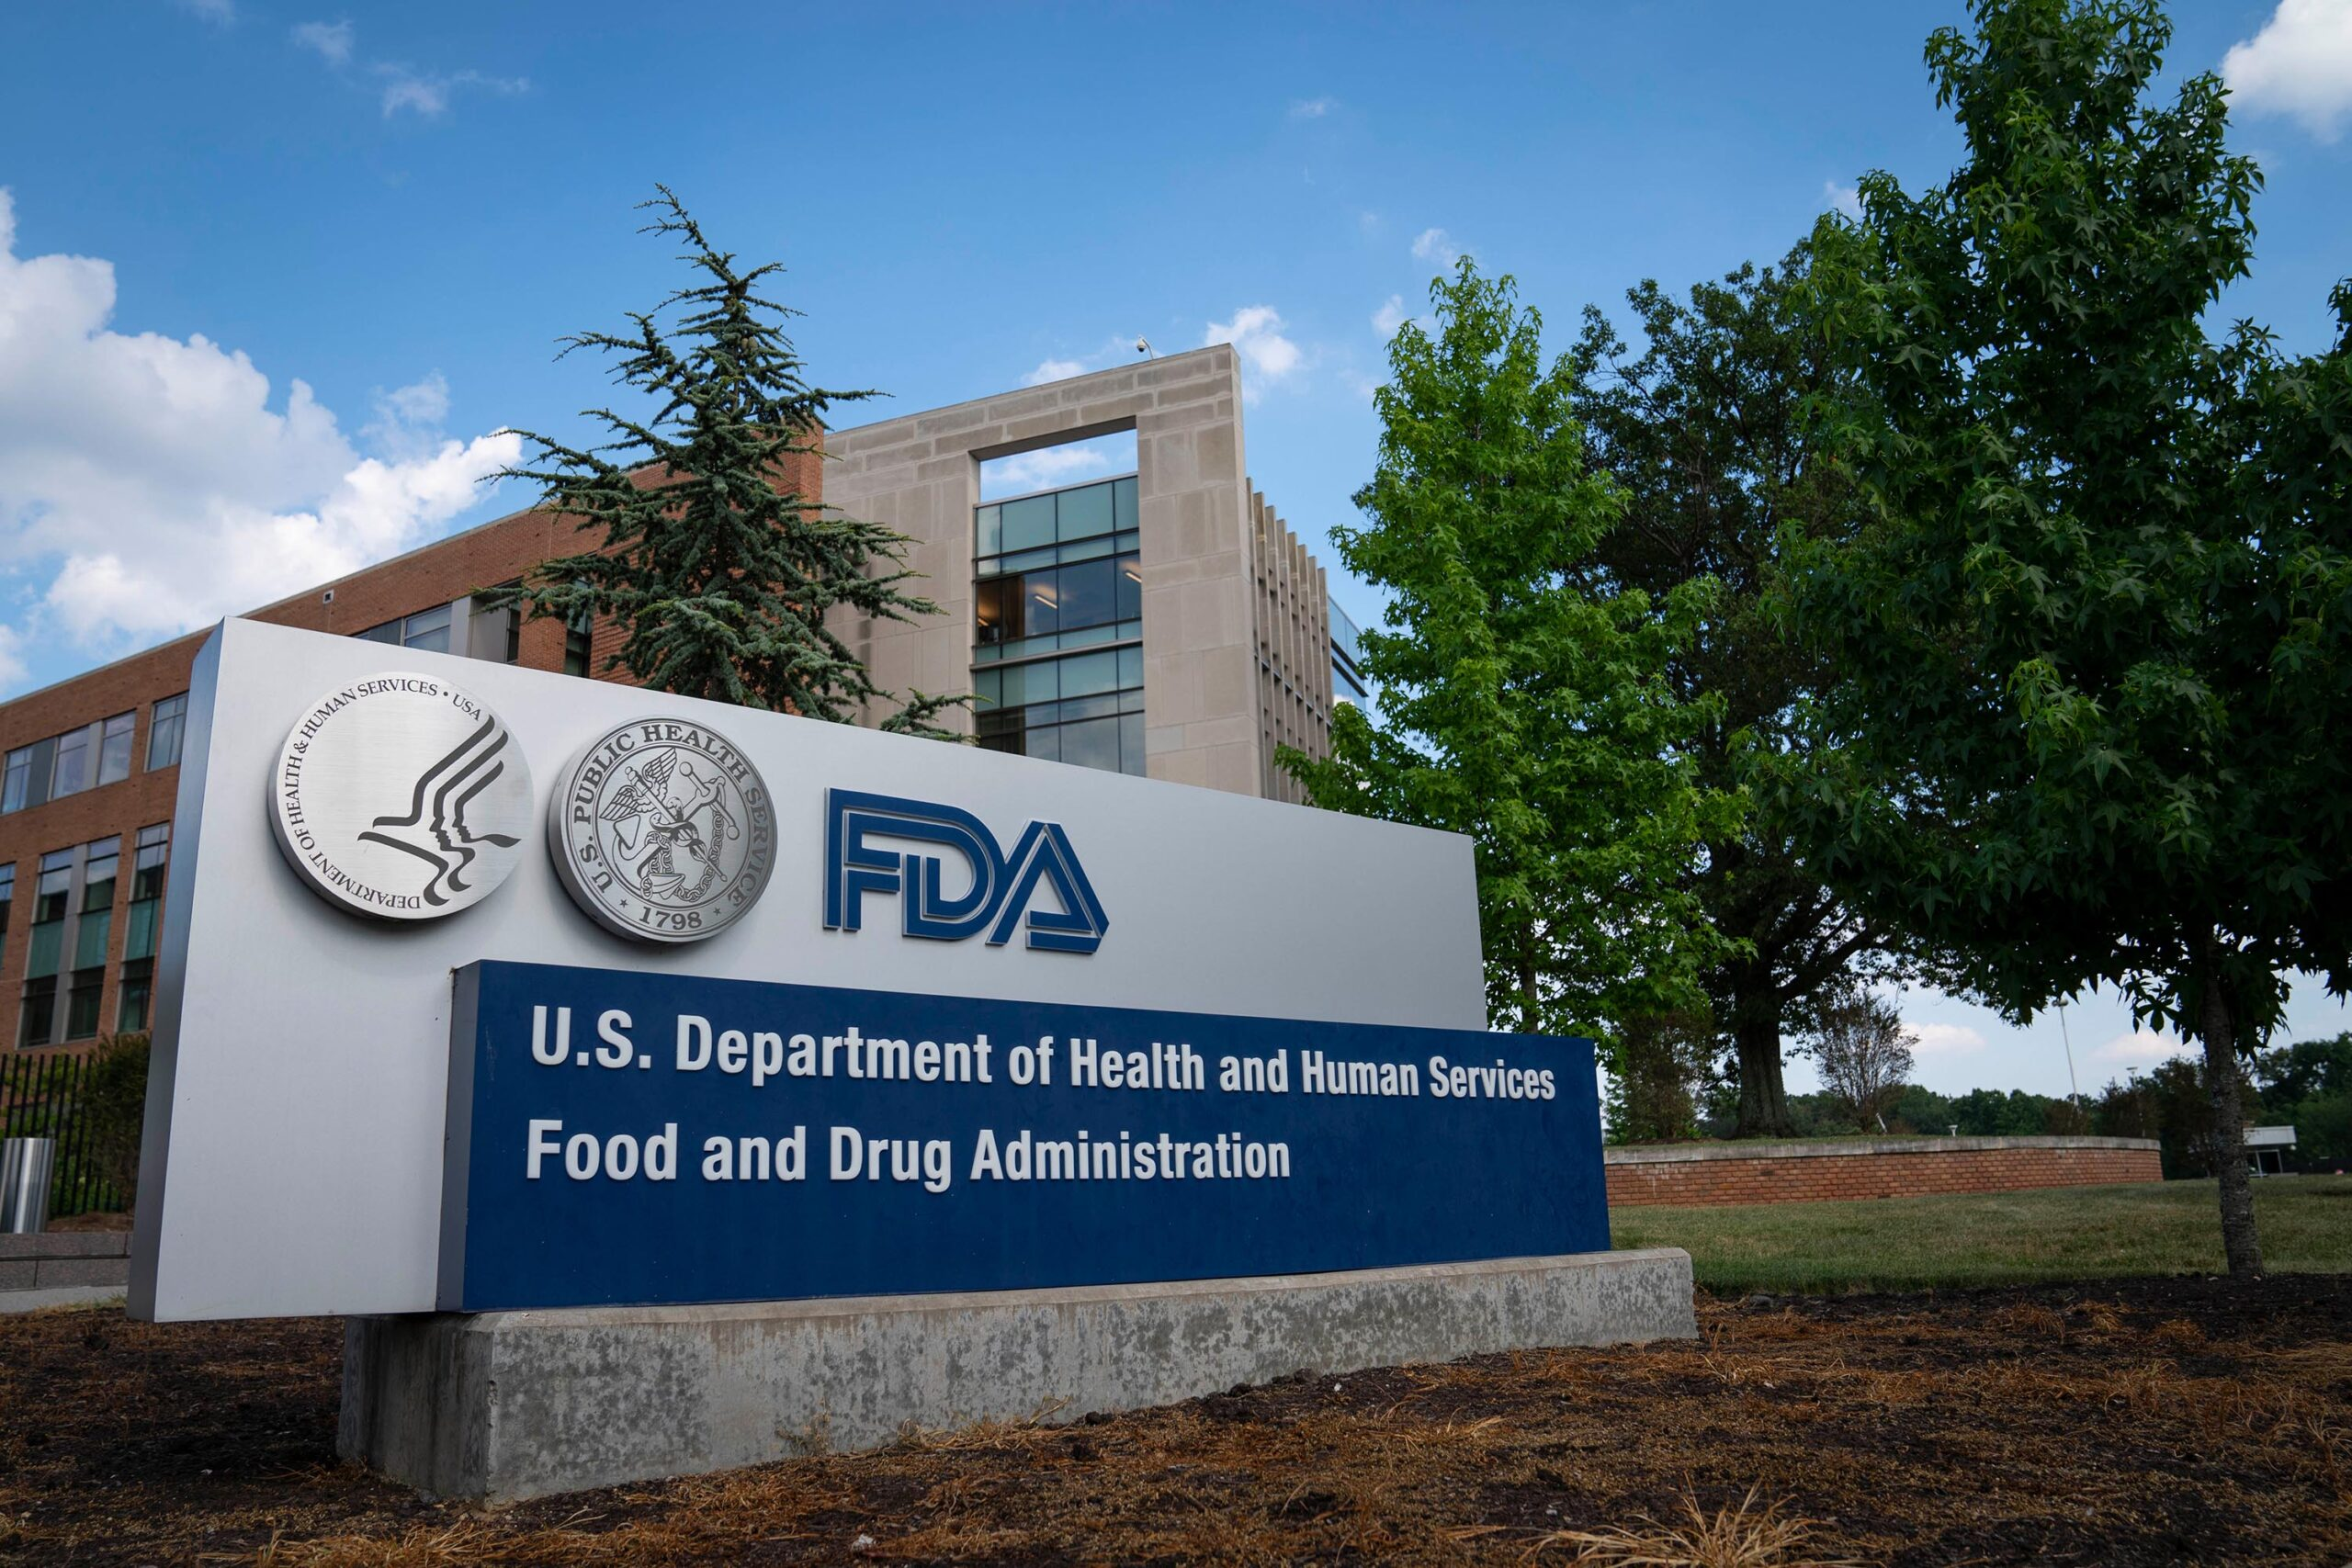 The US Food and Drug Administration said Tuesday it had authorized e-cigarette products for the first time ever, giving permission to R.J. Reynolds to sell three of its Vuse vape products.